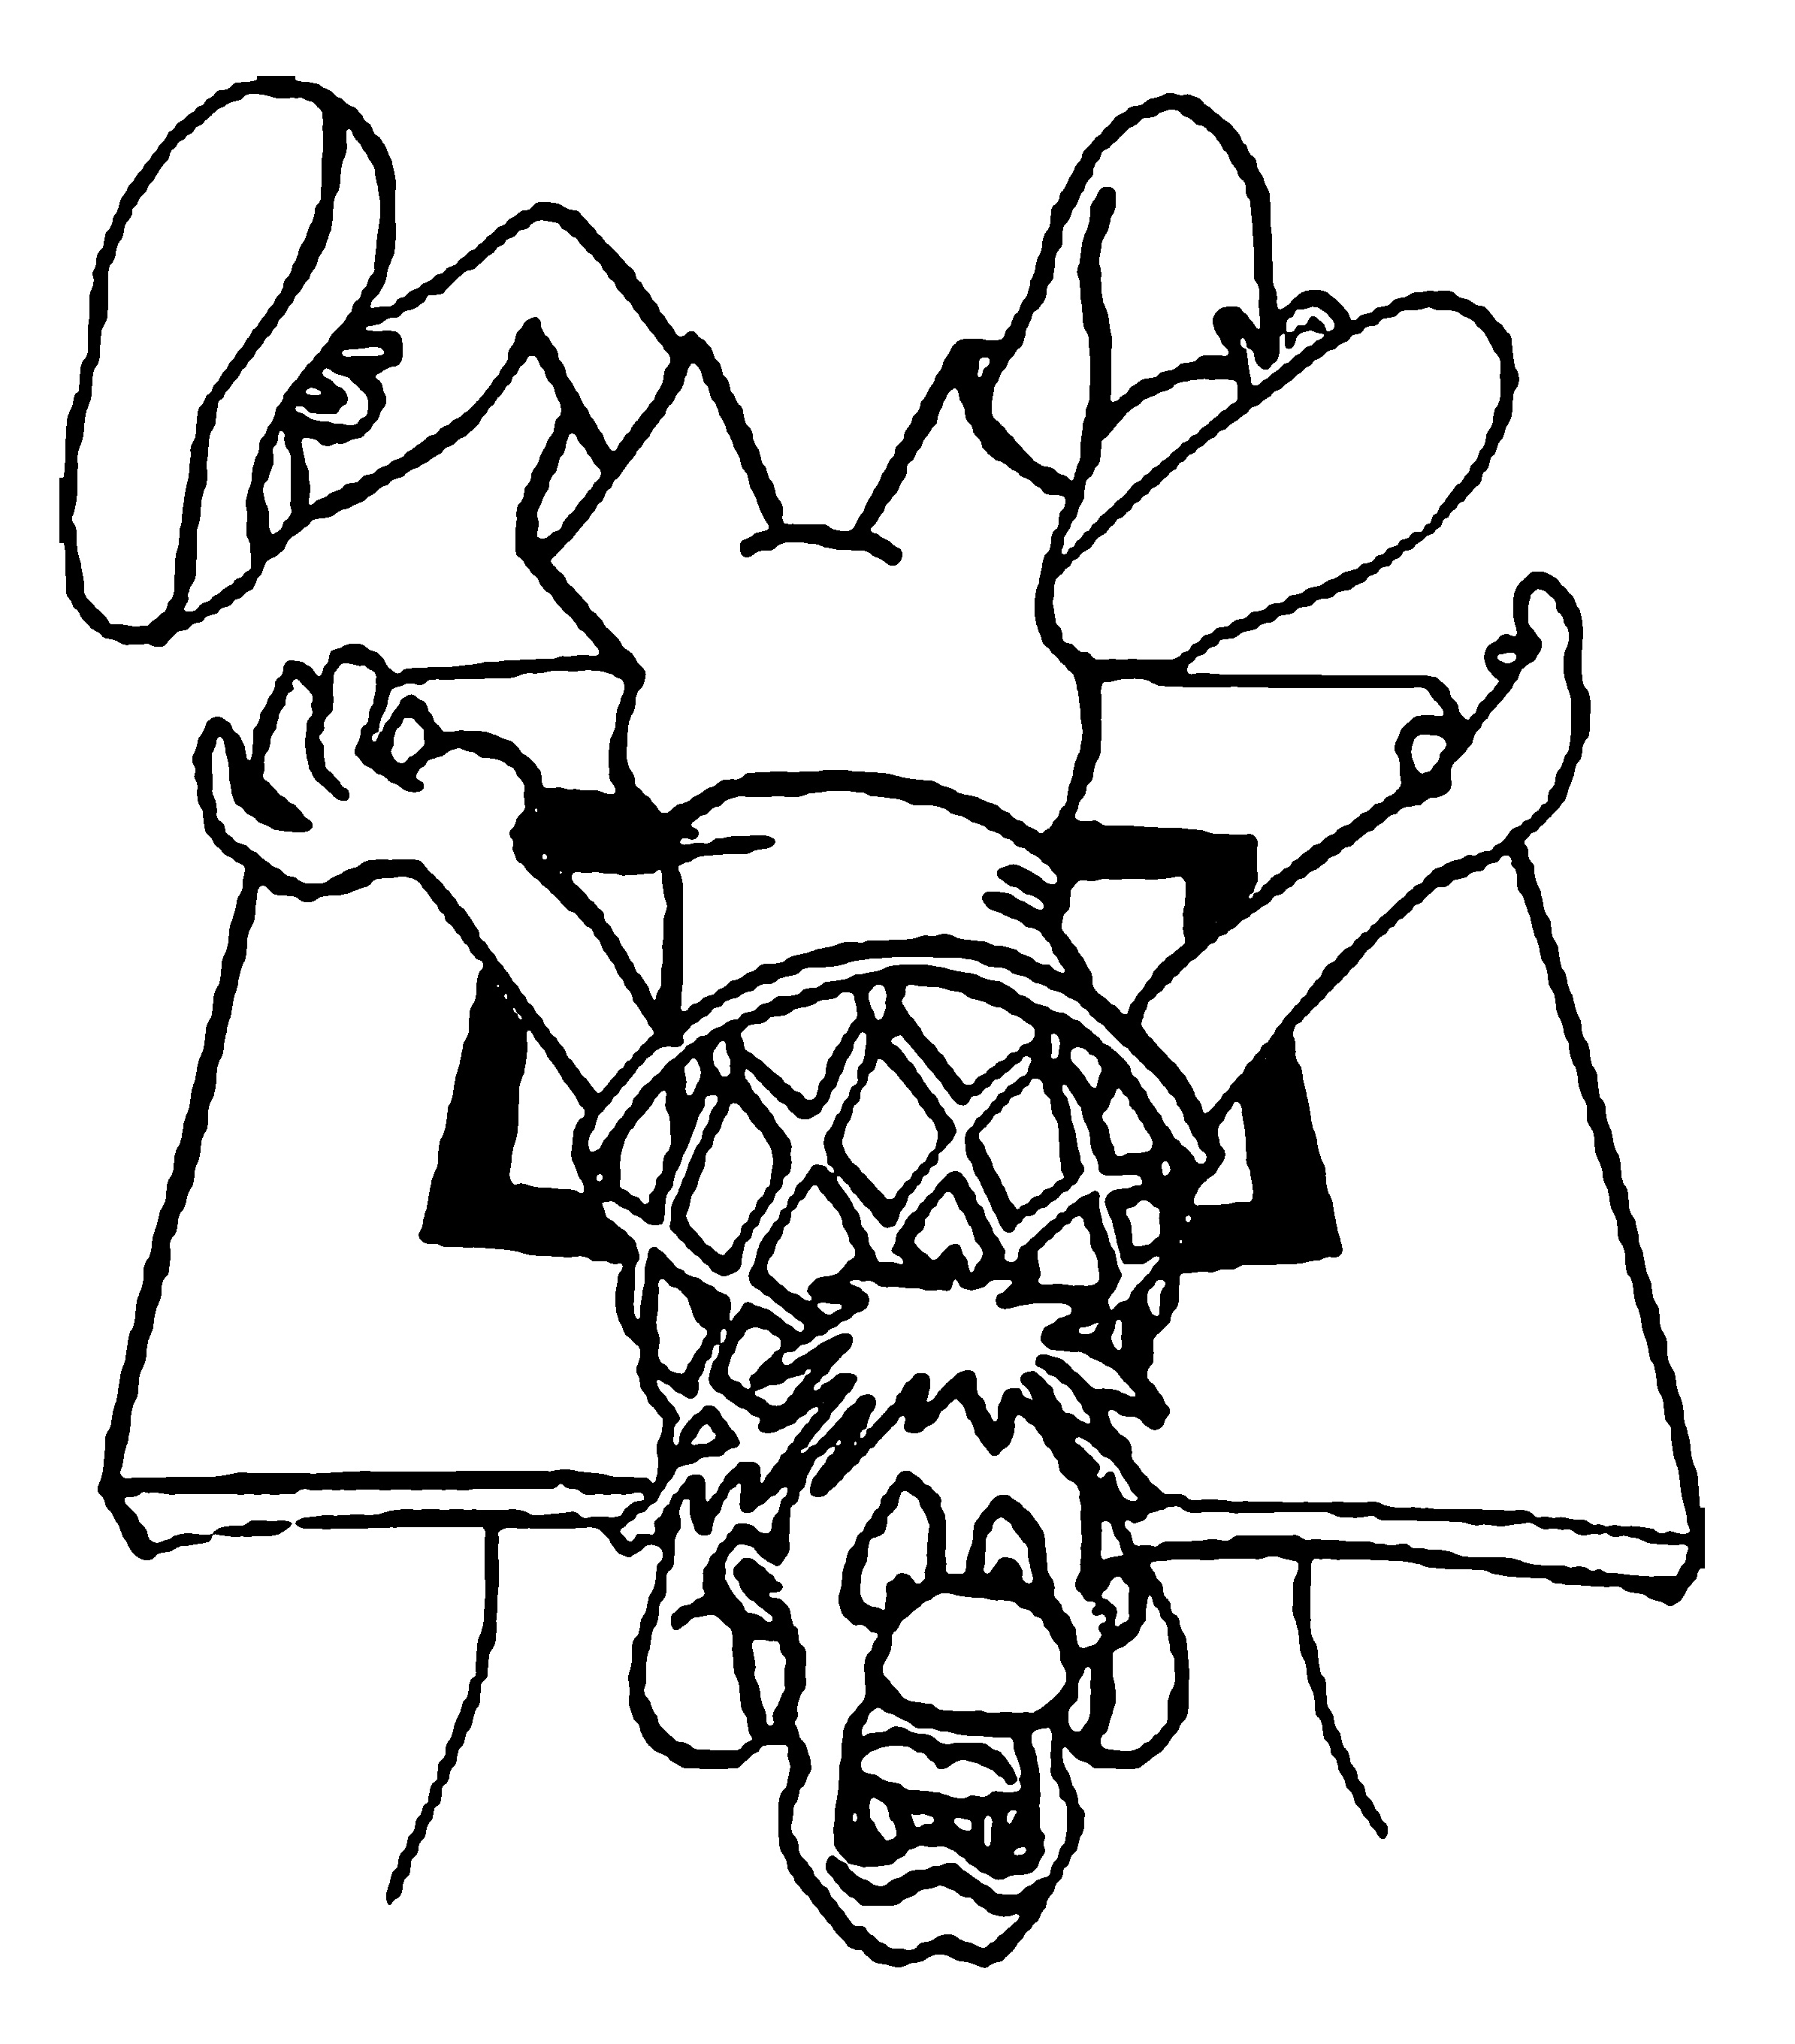 A Man Is In The Basketball Net Coloring Page